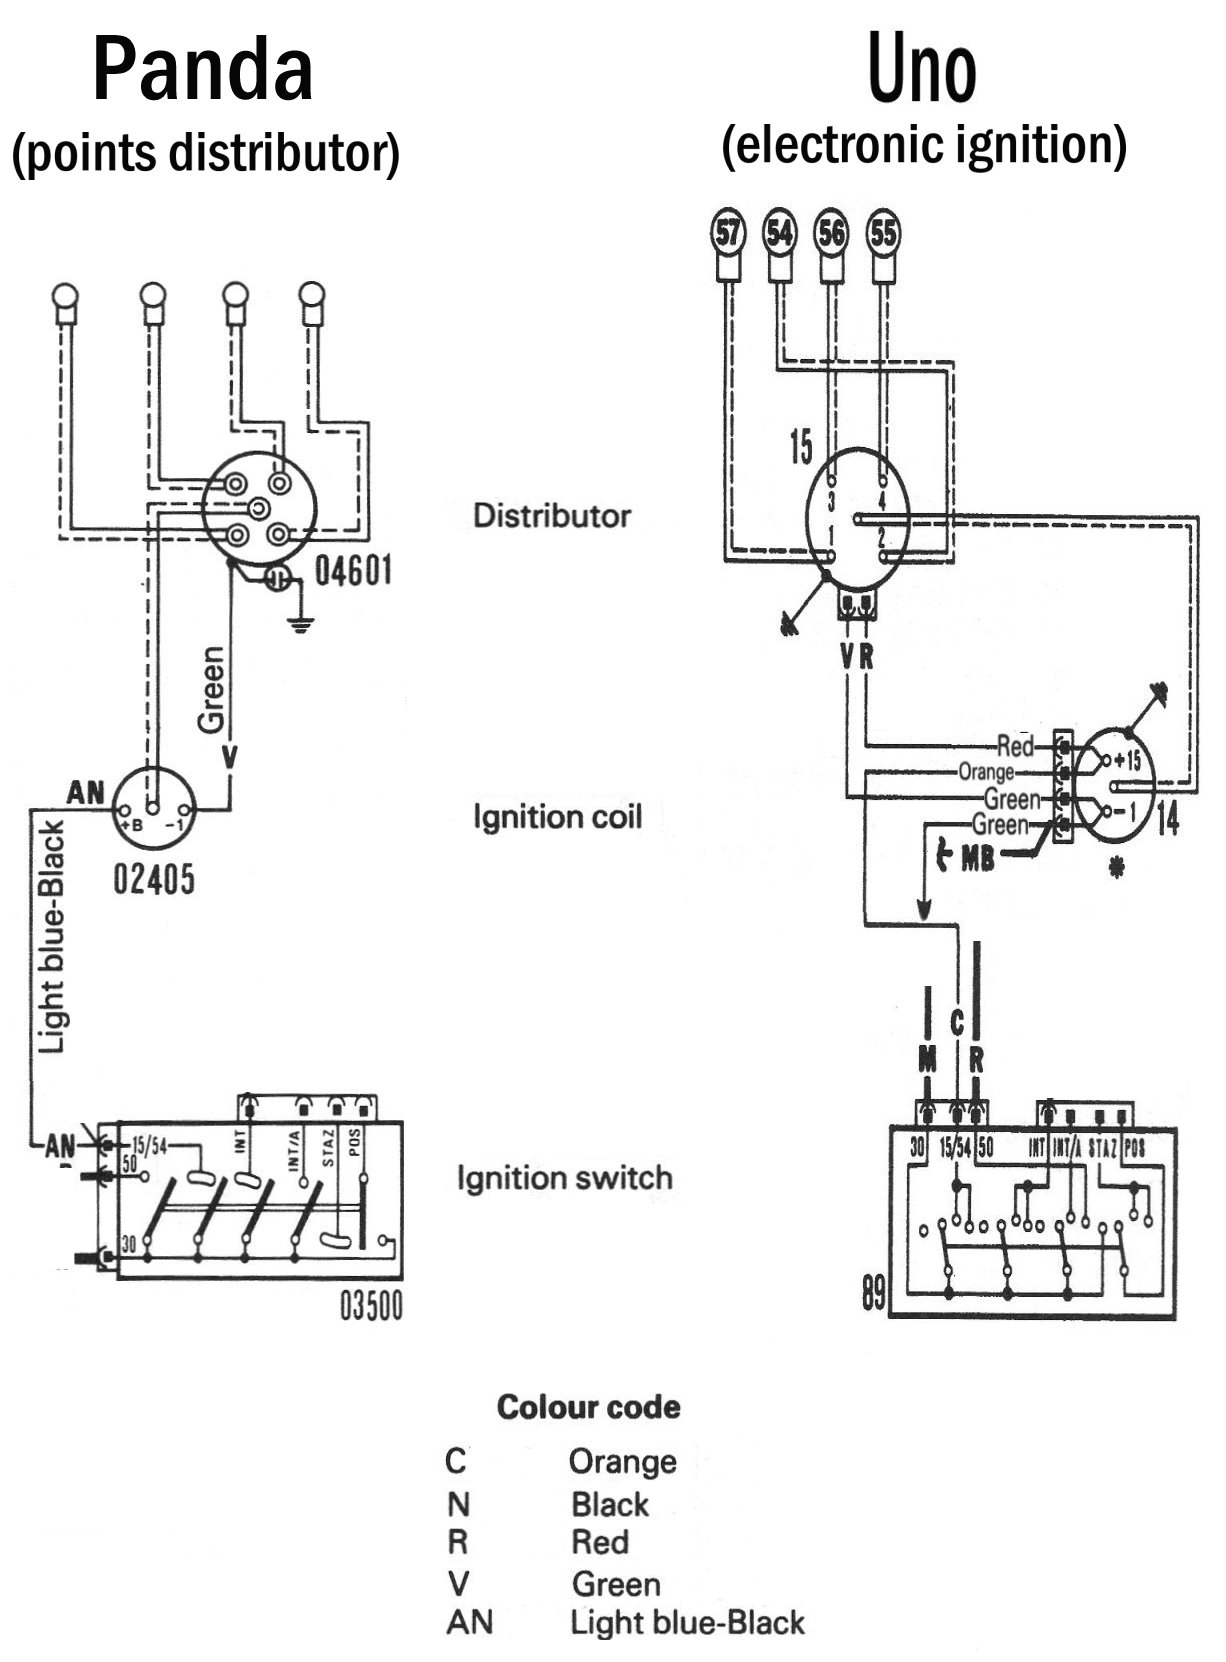 Click image for larger version  Name:Early Panda late uno wiring.jpg Views:15 Size:162.1 KB ID:182283